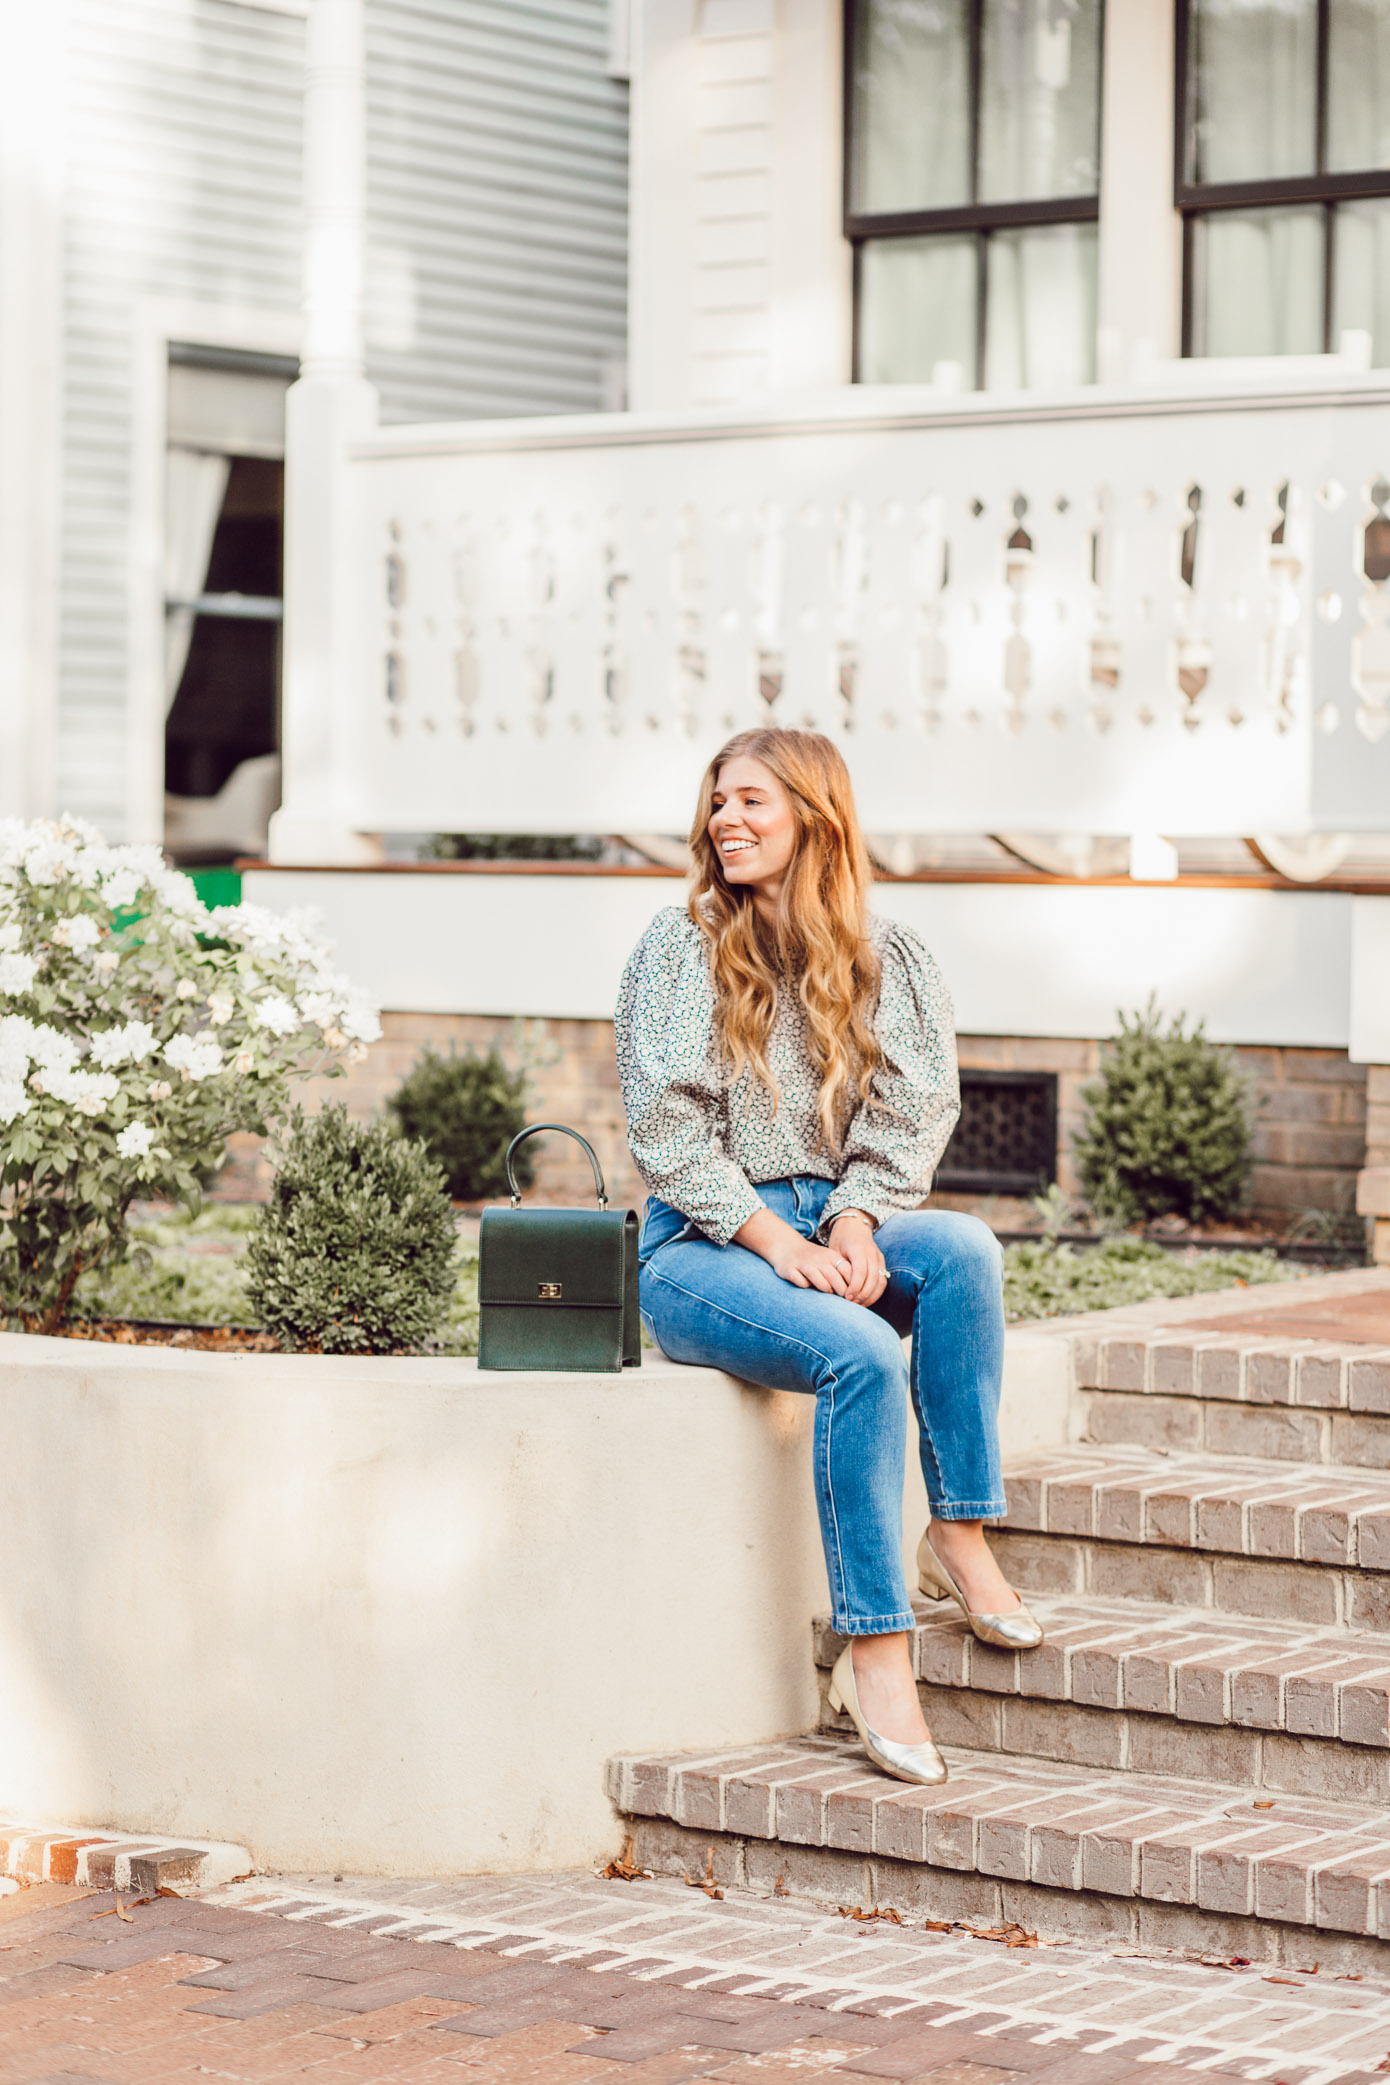 Frame Le Slender Straight Leg Jeans - Fall Statement Sleeves featured by popular Charlotte style blogger, Laura Leigh of Louella Reese